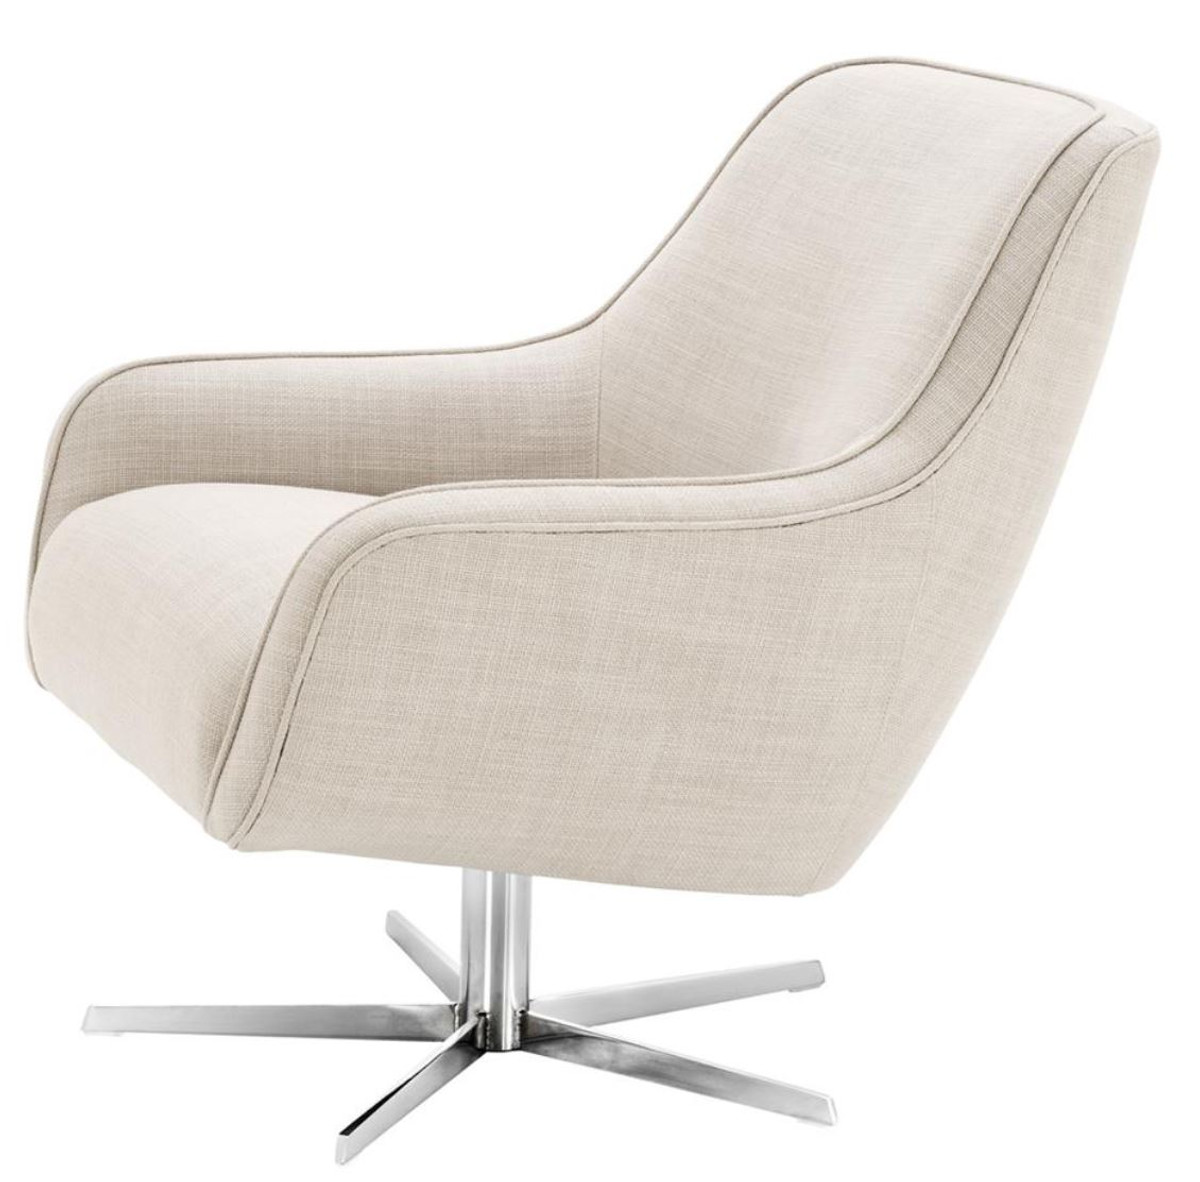 Drehsessel Grau Casa Padrino Swivel Armchair Natural Colors Silver 76 X 80 X H 82 Cm Luxury Furniture